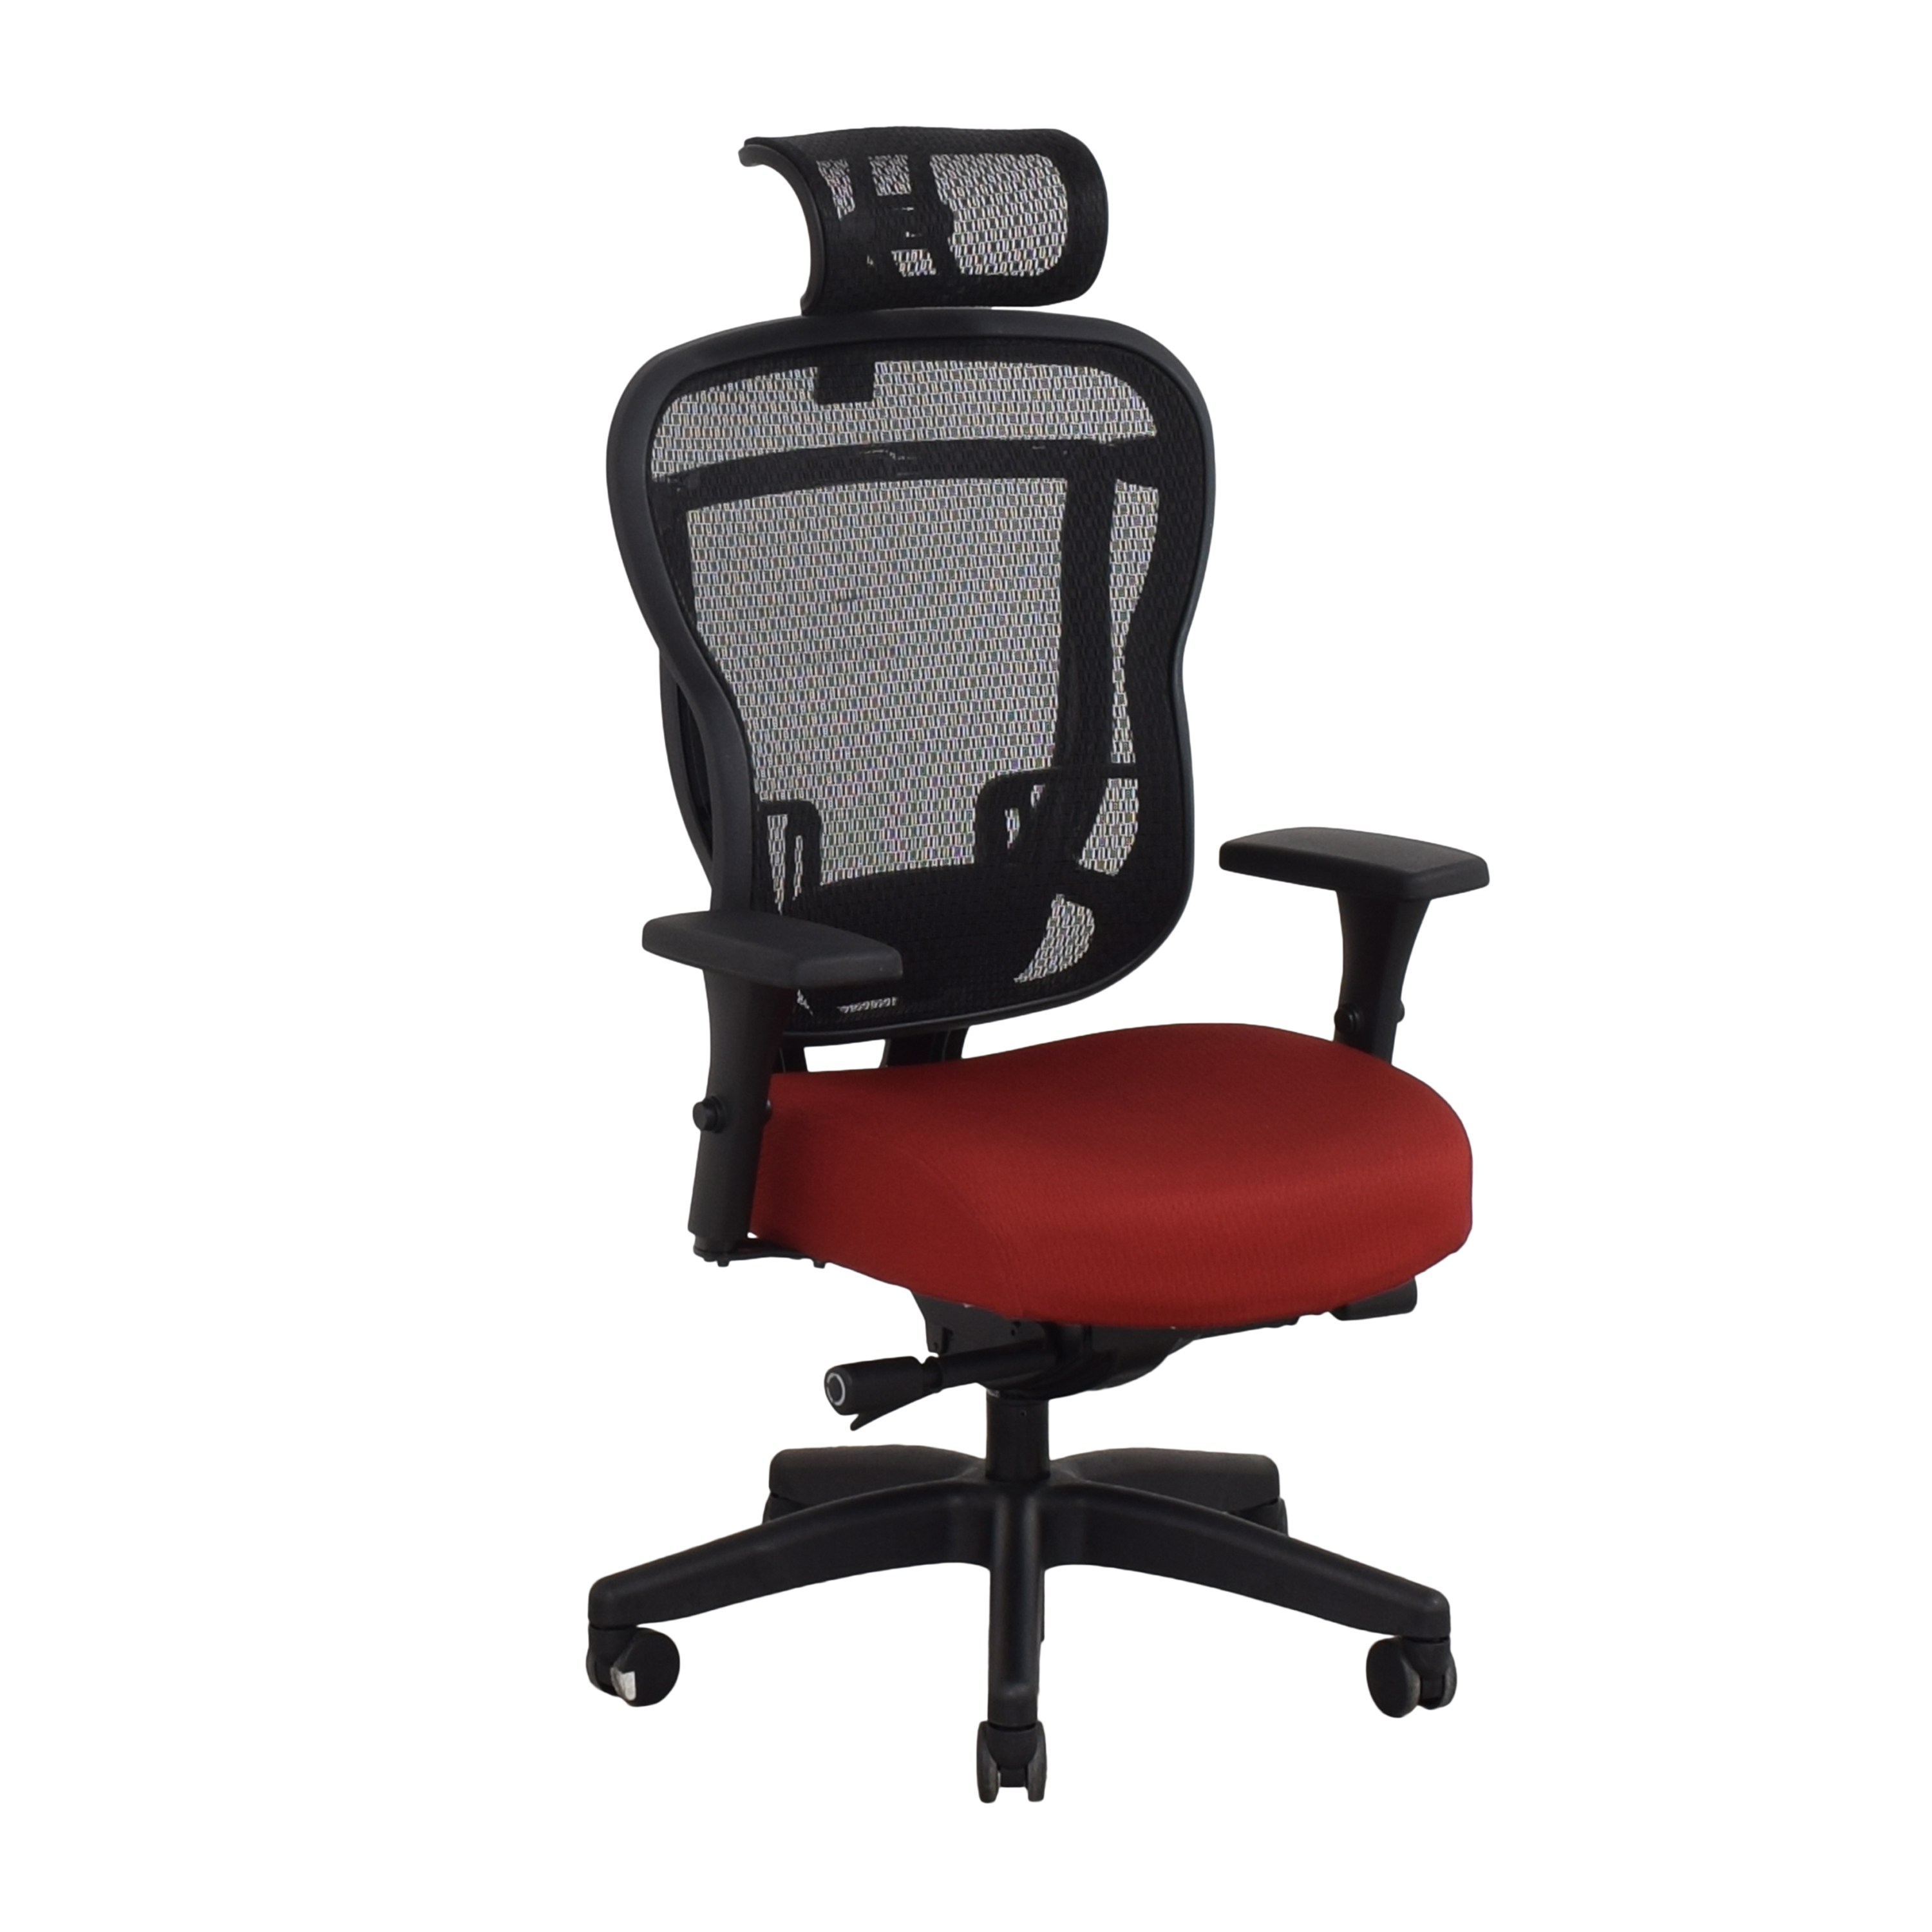 Buzz Seating Buzz Seating Rika Adjustable Task Chair discount